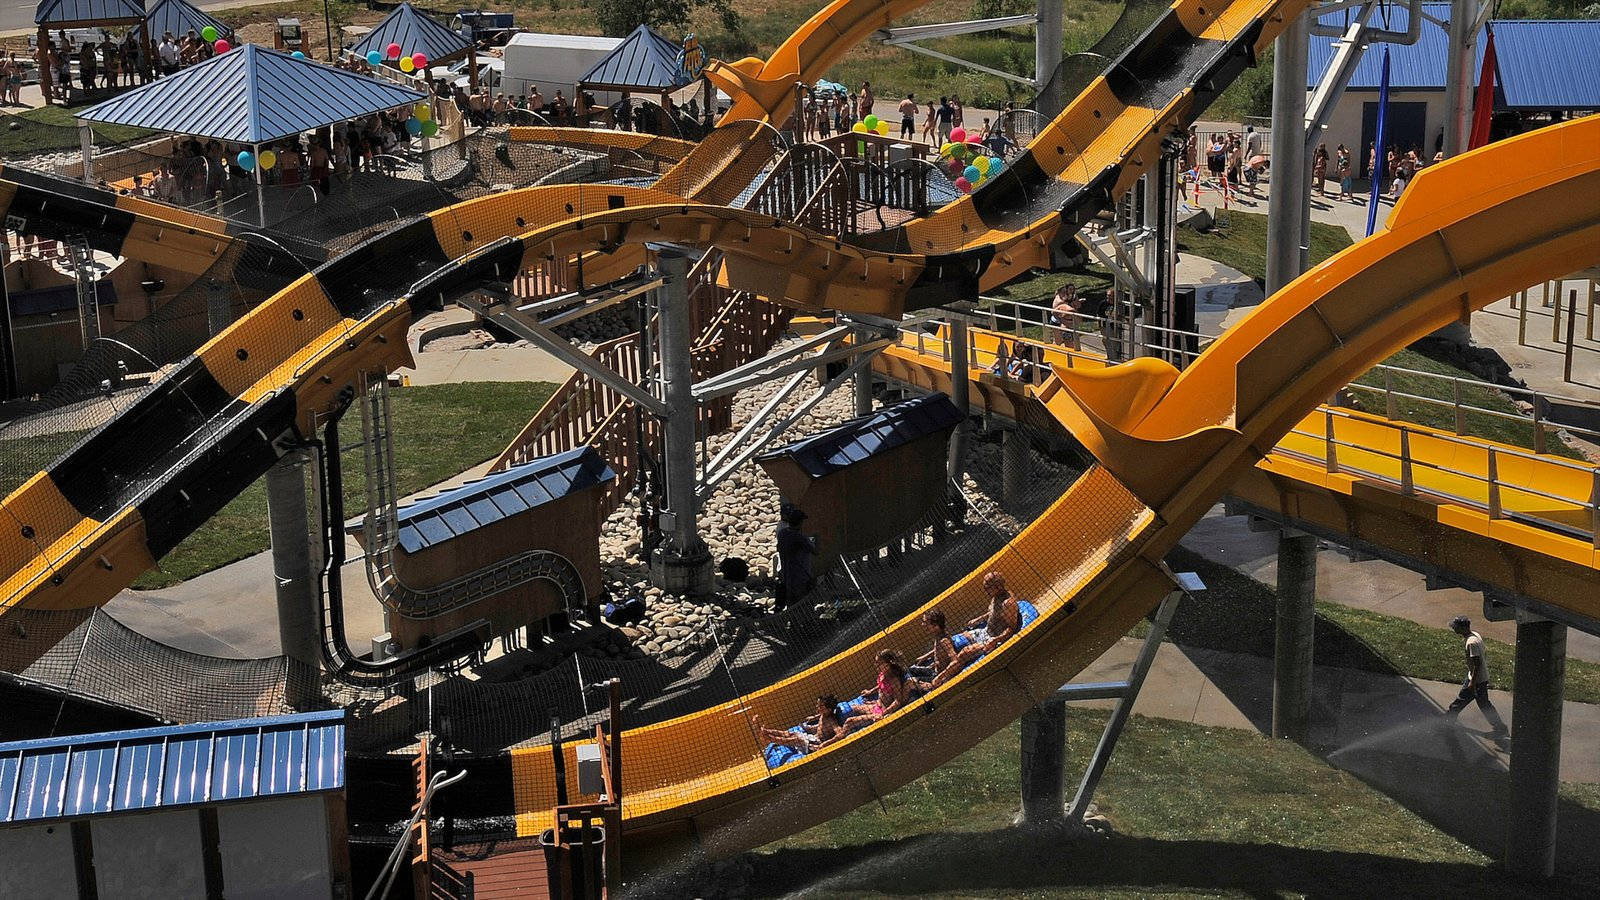 Theme Parks Pictures: View Images of Colorado